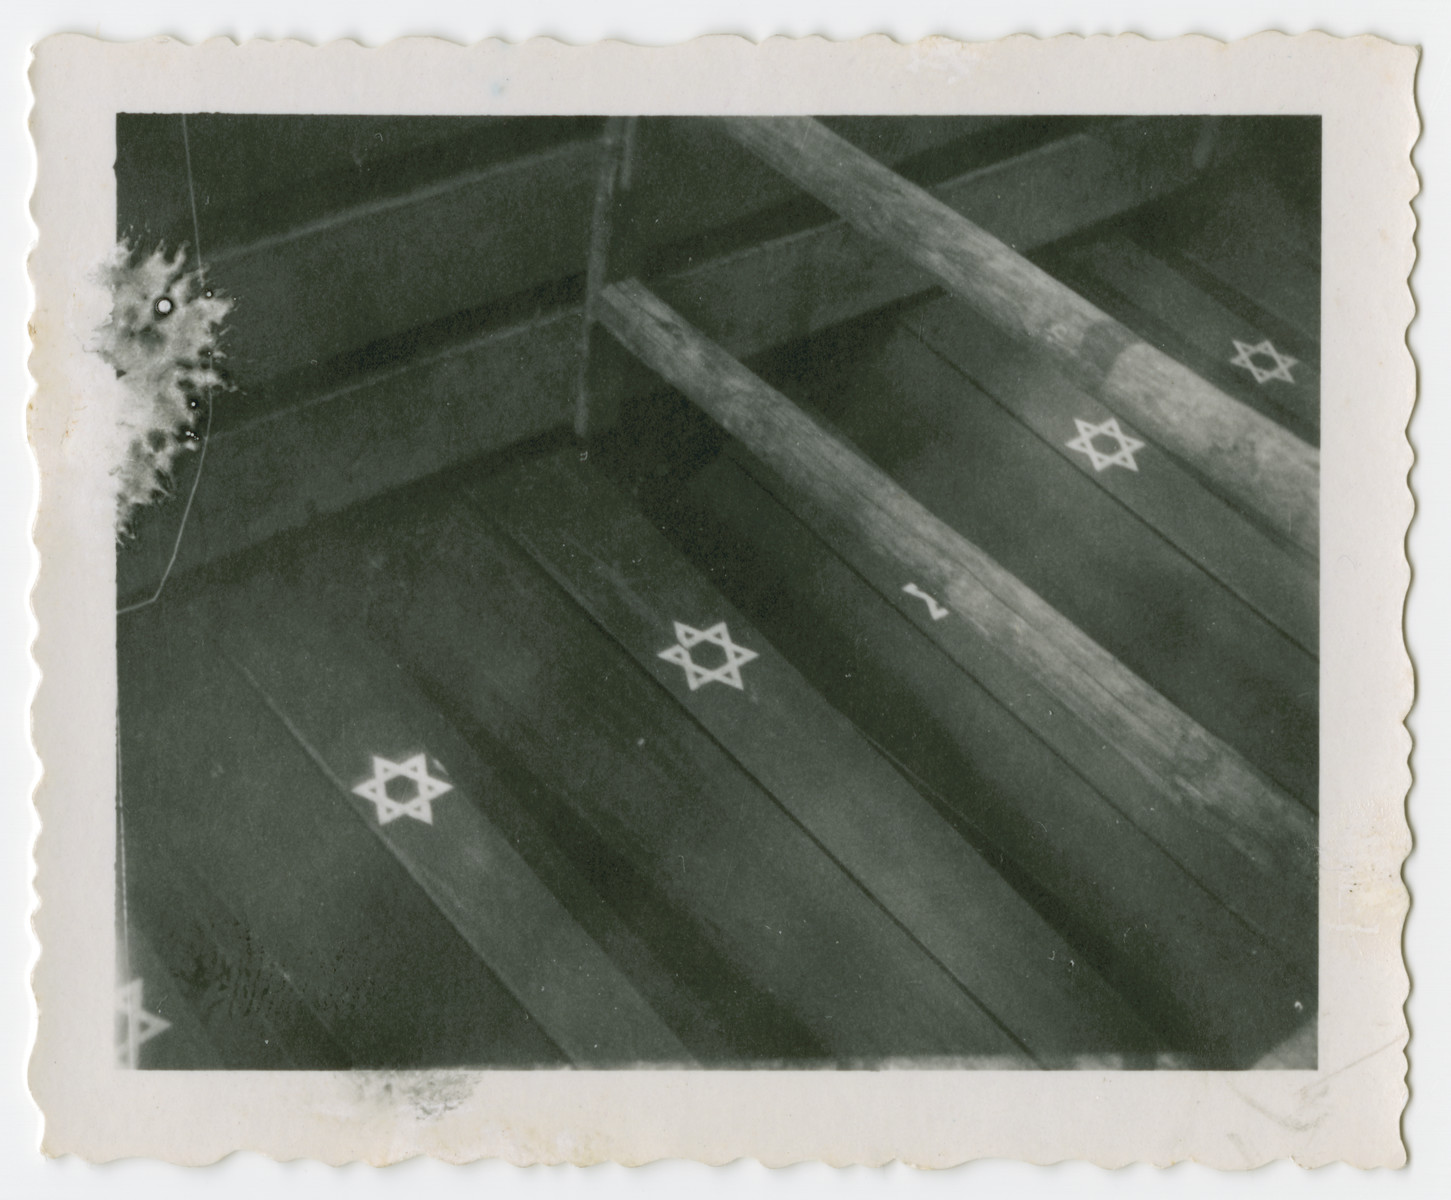 View of coffins marked with a Star of David used in the reburial of Jewish victims of the Holocaust.